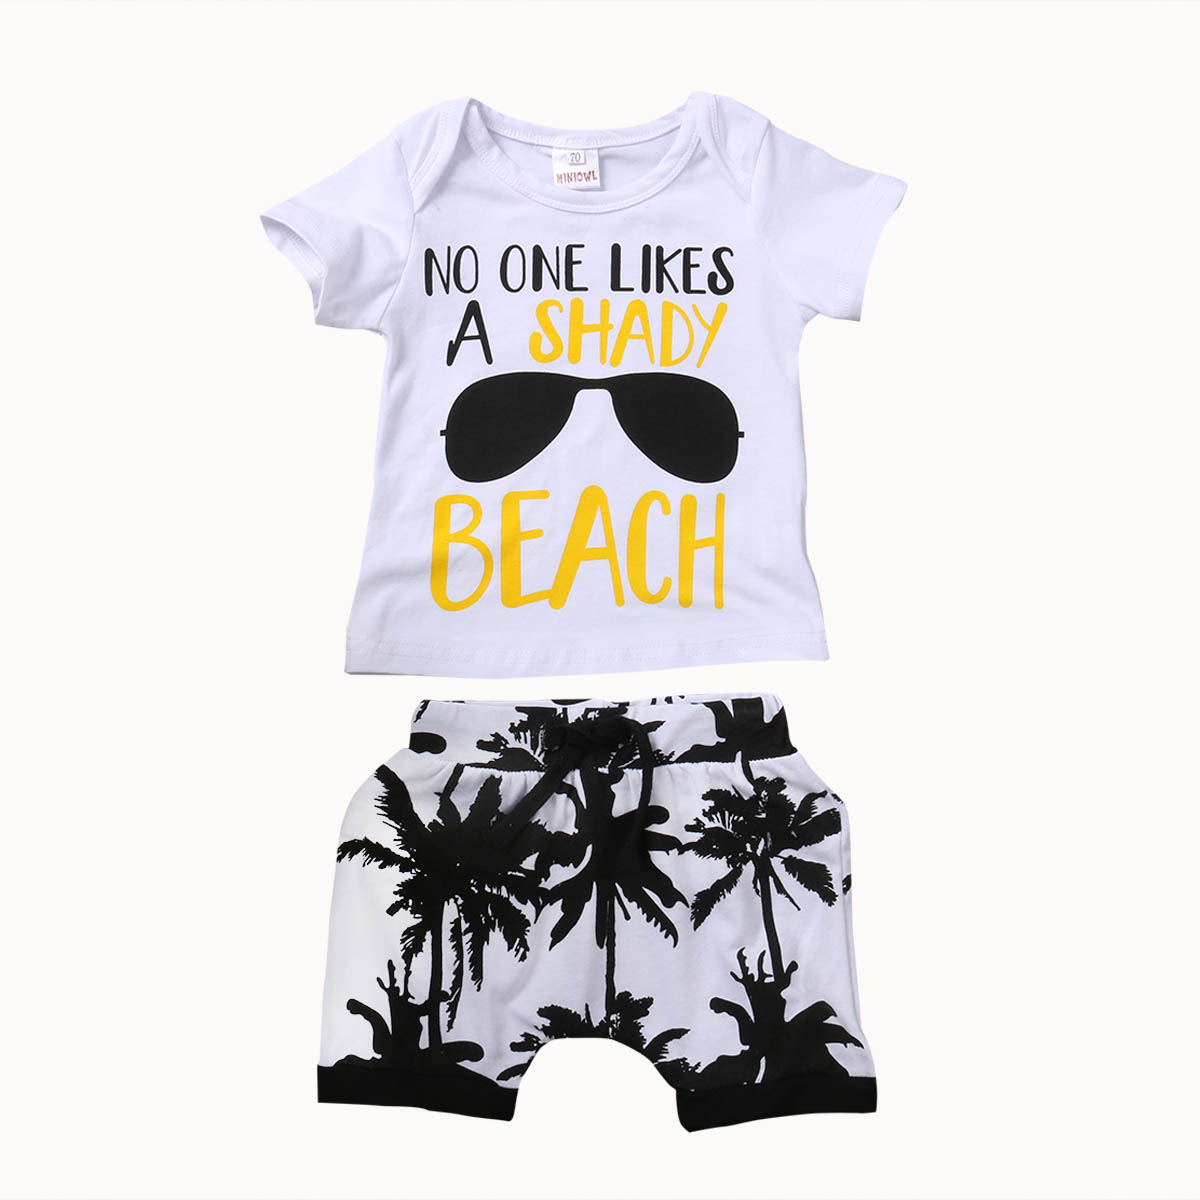 2PCS Toddler Kids Baby Boy Girl Clothes Set 2017 Summer Short Sleeve Cotton T-shirt Top+Shorts Hot Pant Outfit Children Clothing